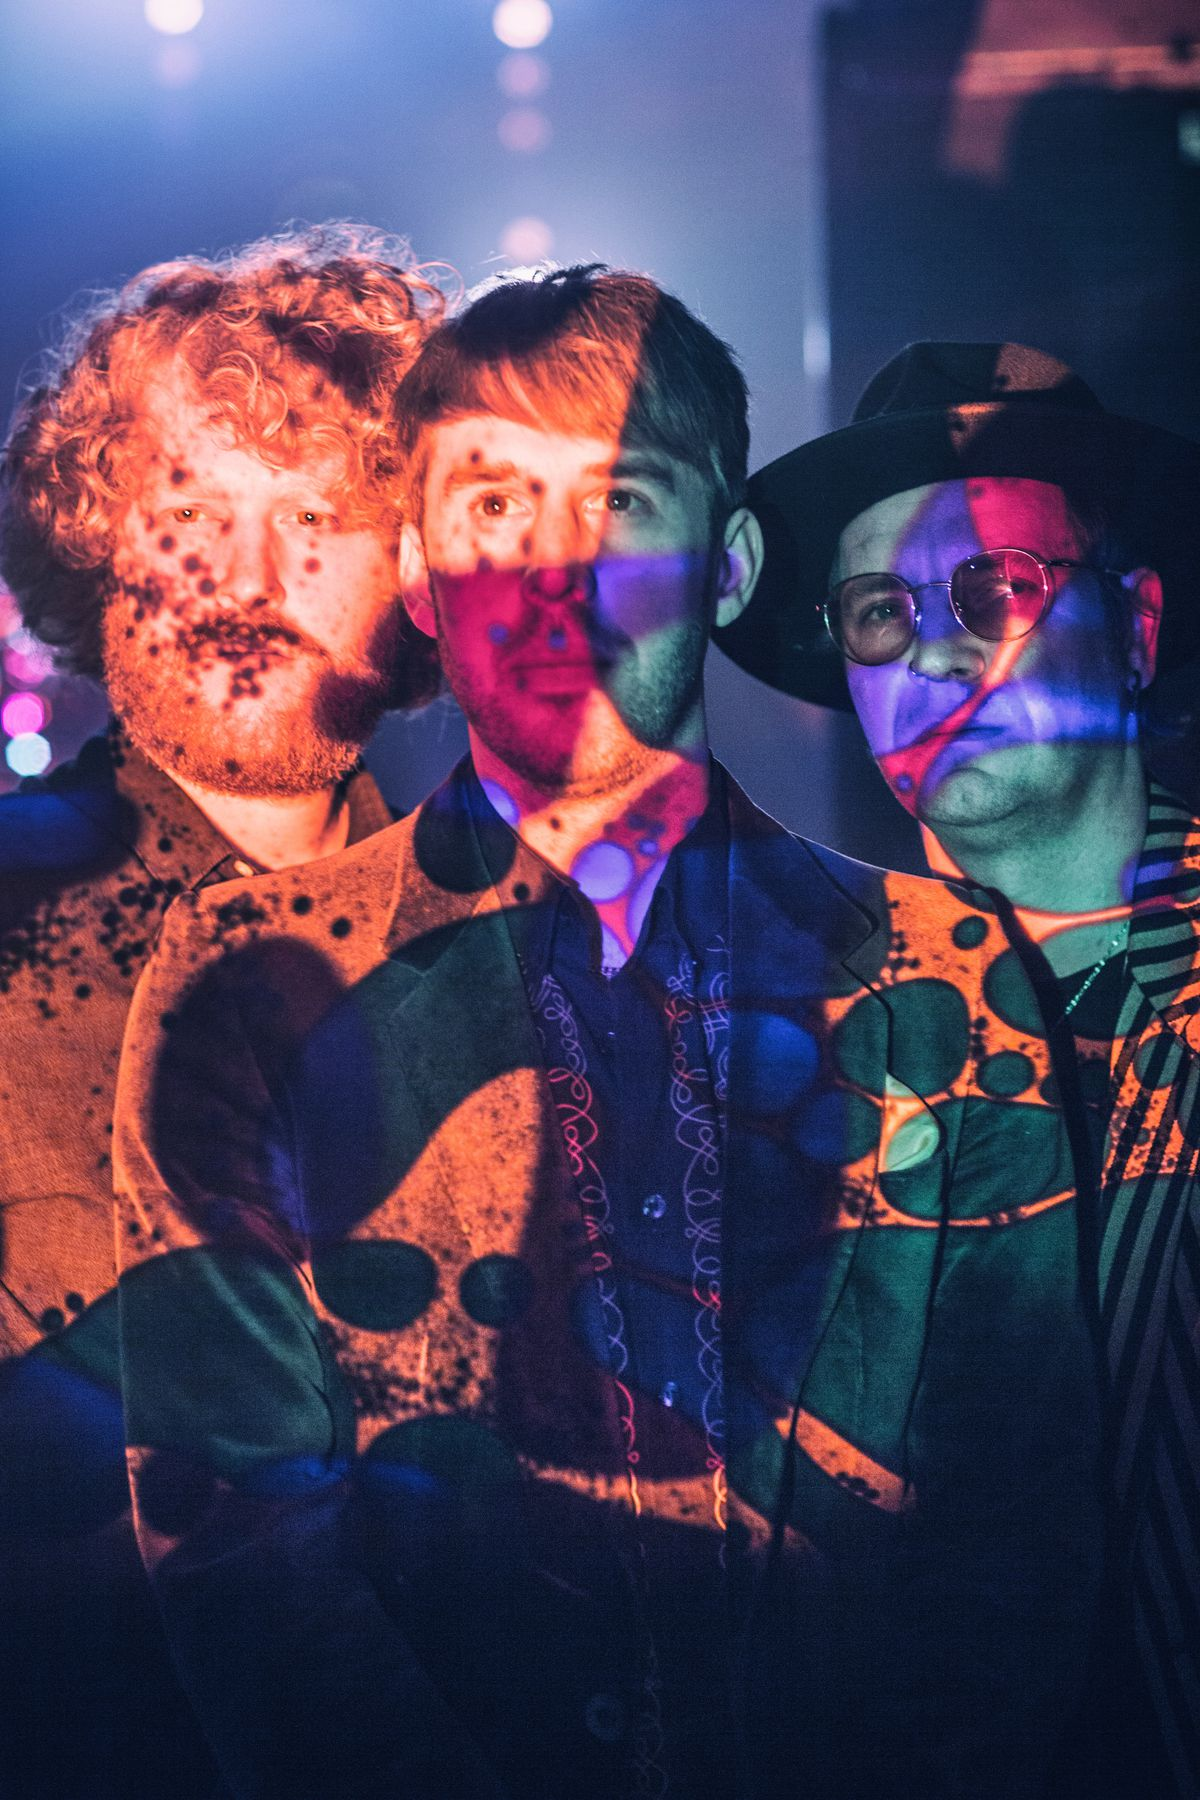 The band are renowned for their psychedelic sound. Picture: Emma Jones